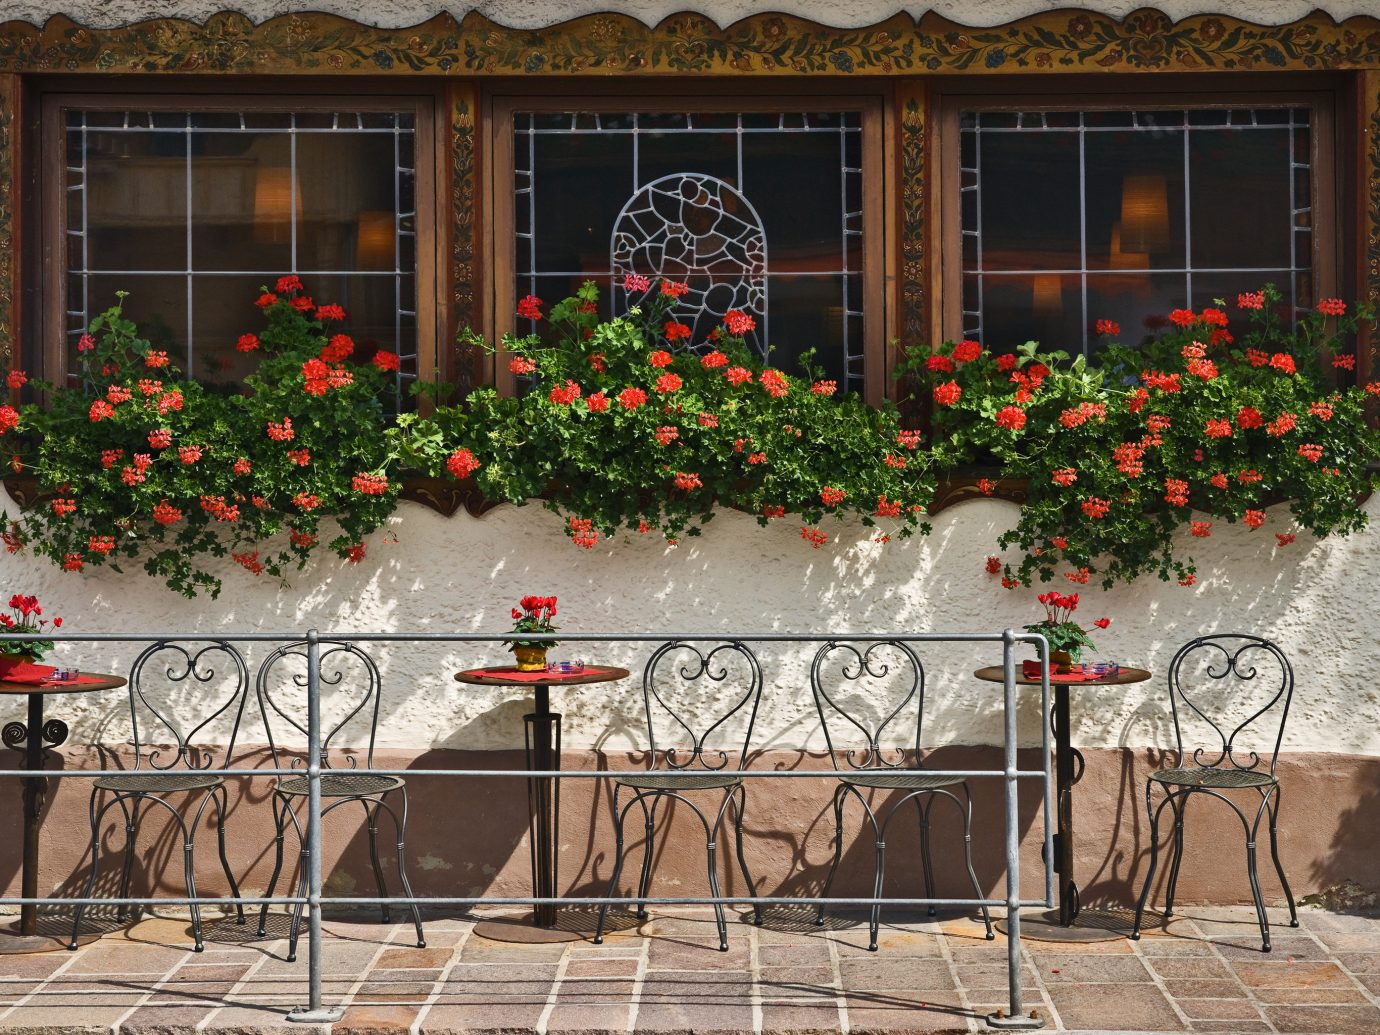 Mountains + Skiing Trip Ideas outdoor flower window home plant floristry house facade tree table outdoor structure door Balcony porch decorated surrounded